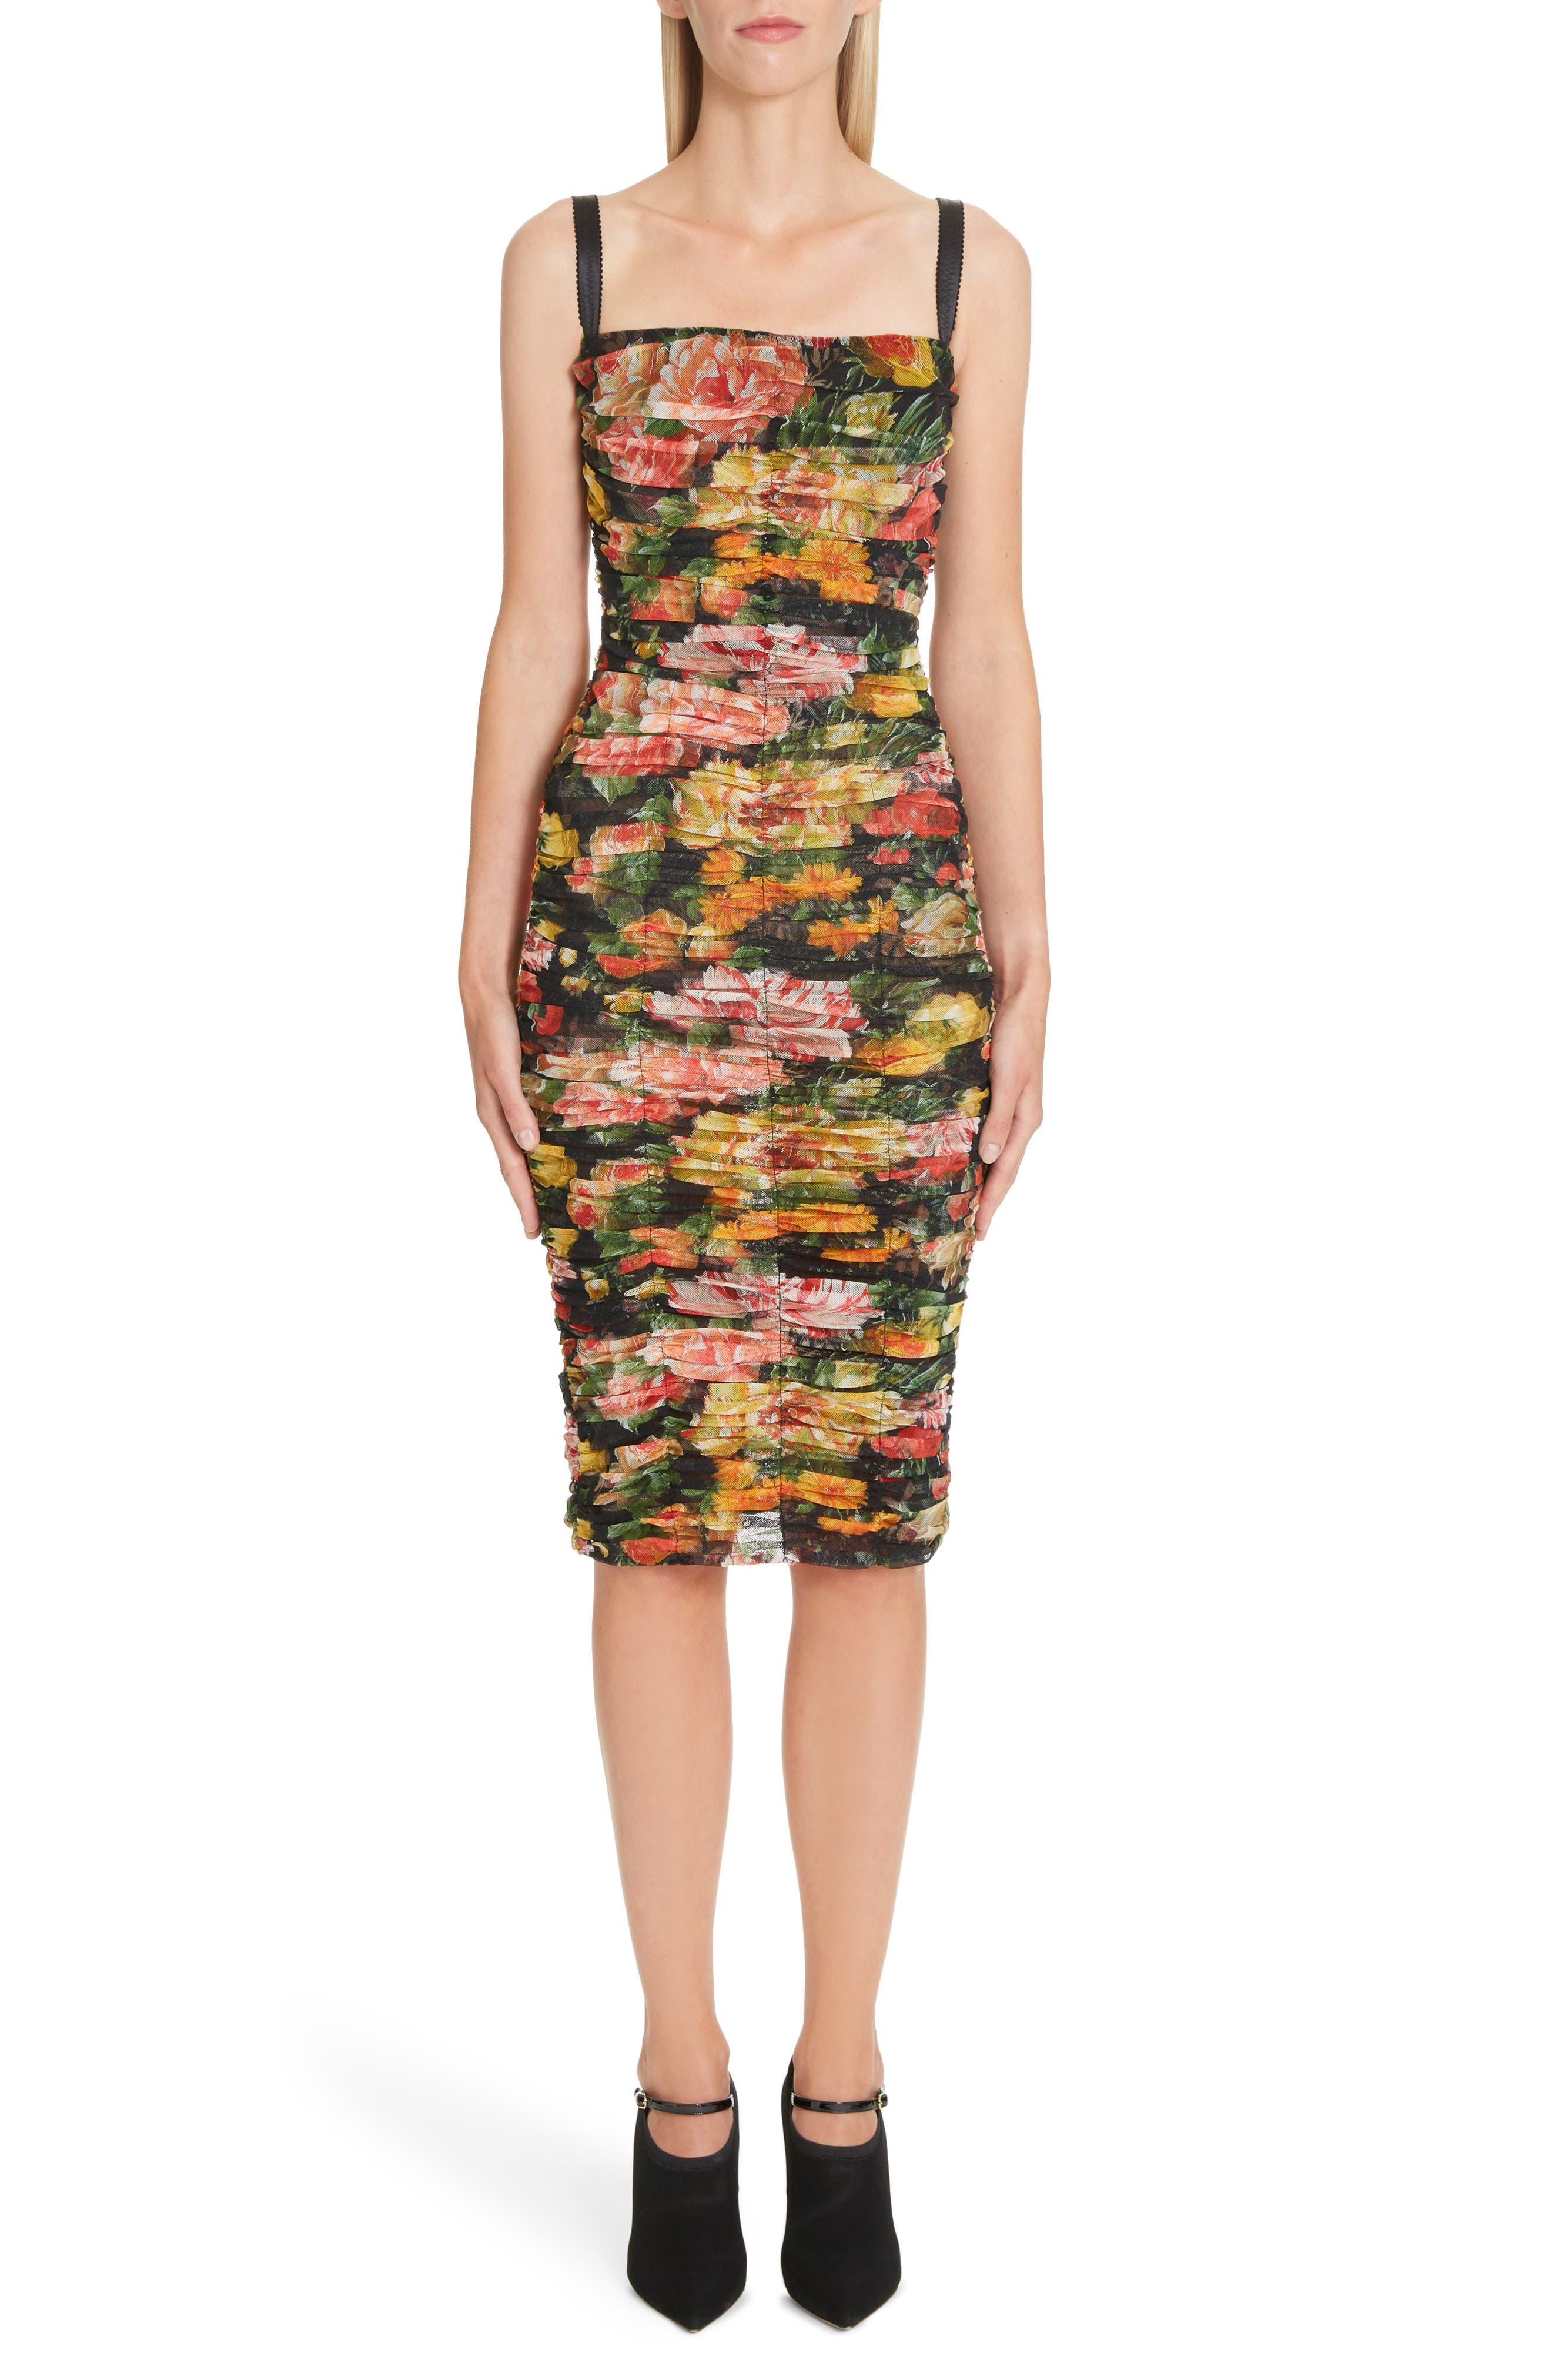 Dolce & gabbana Floral Print Ruched Tulle Body-Con Dress, 8 IT - Black